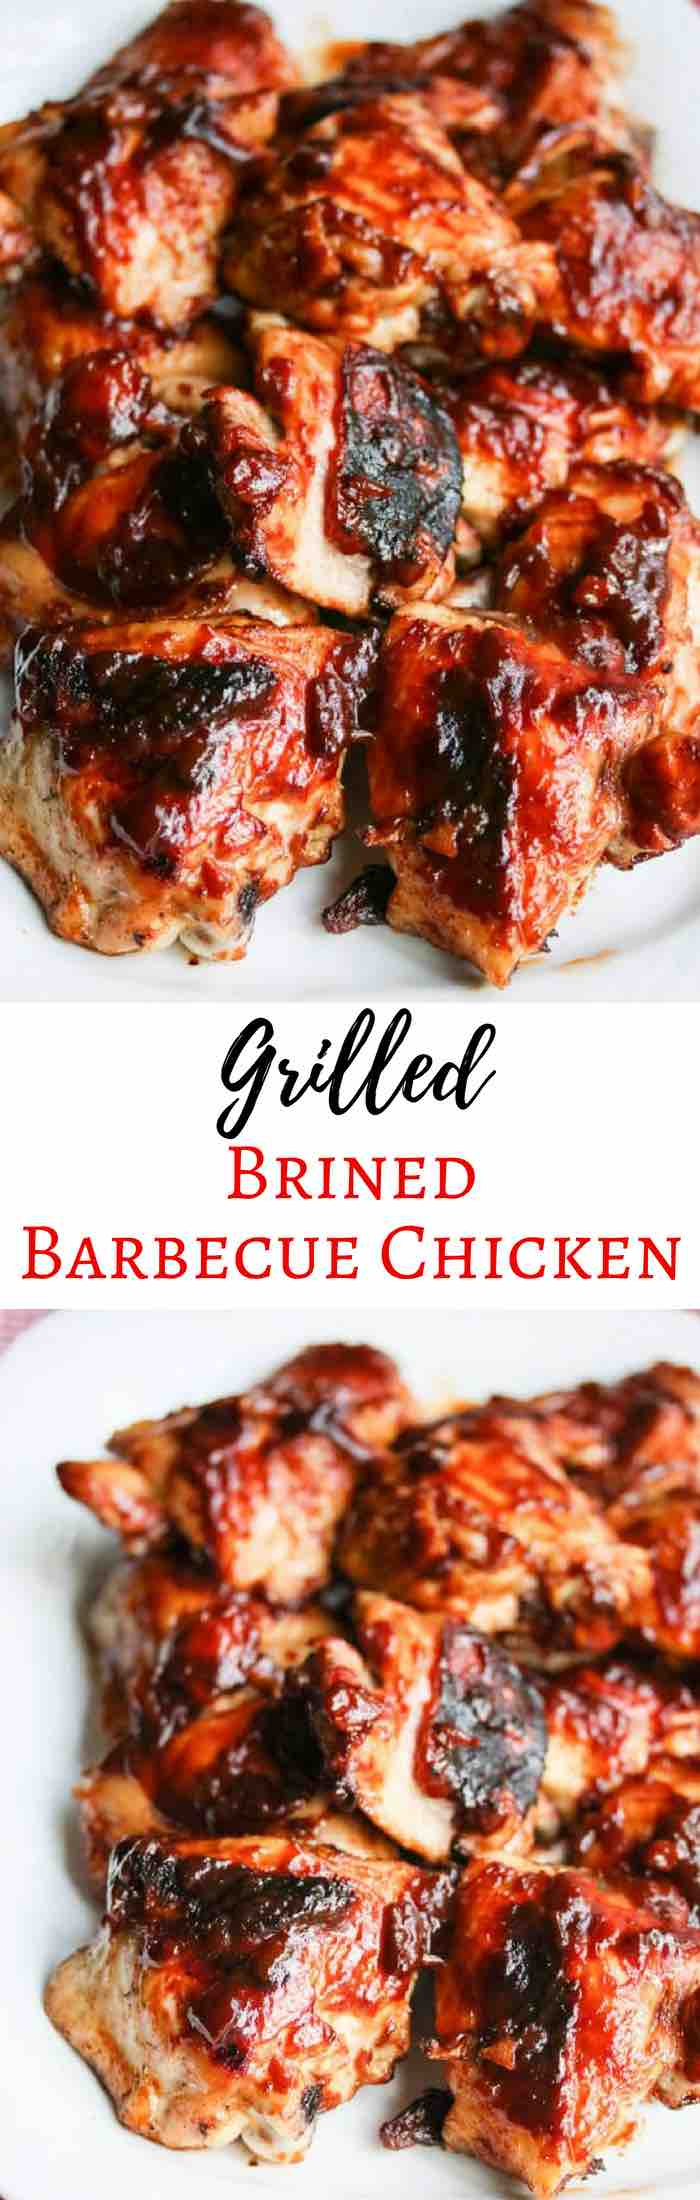 Grilled Brined Chicken with Homemade Barbecue Sauce - brining ensures moist, tender chicken; homemade barbecue sauce has no preservatives or additives